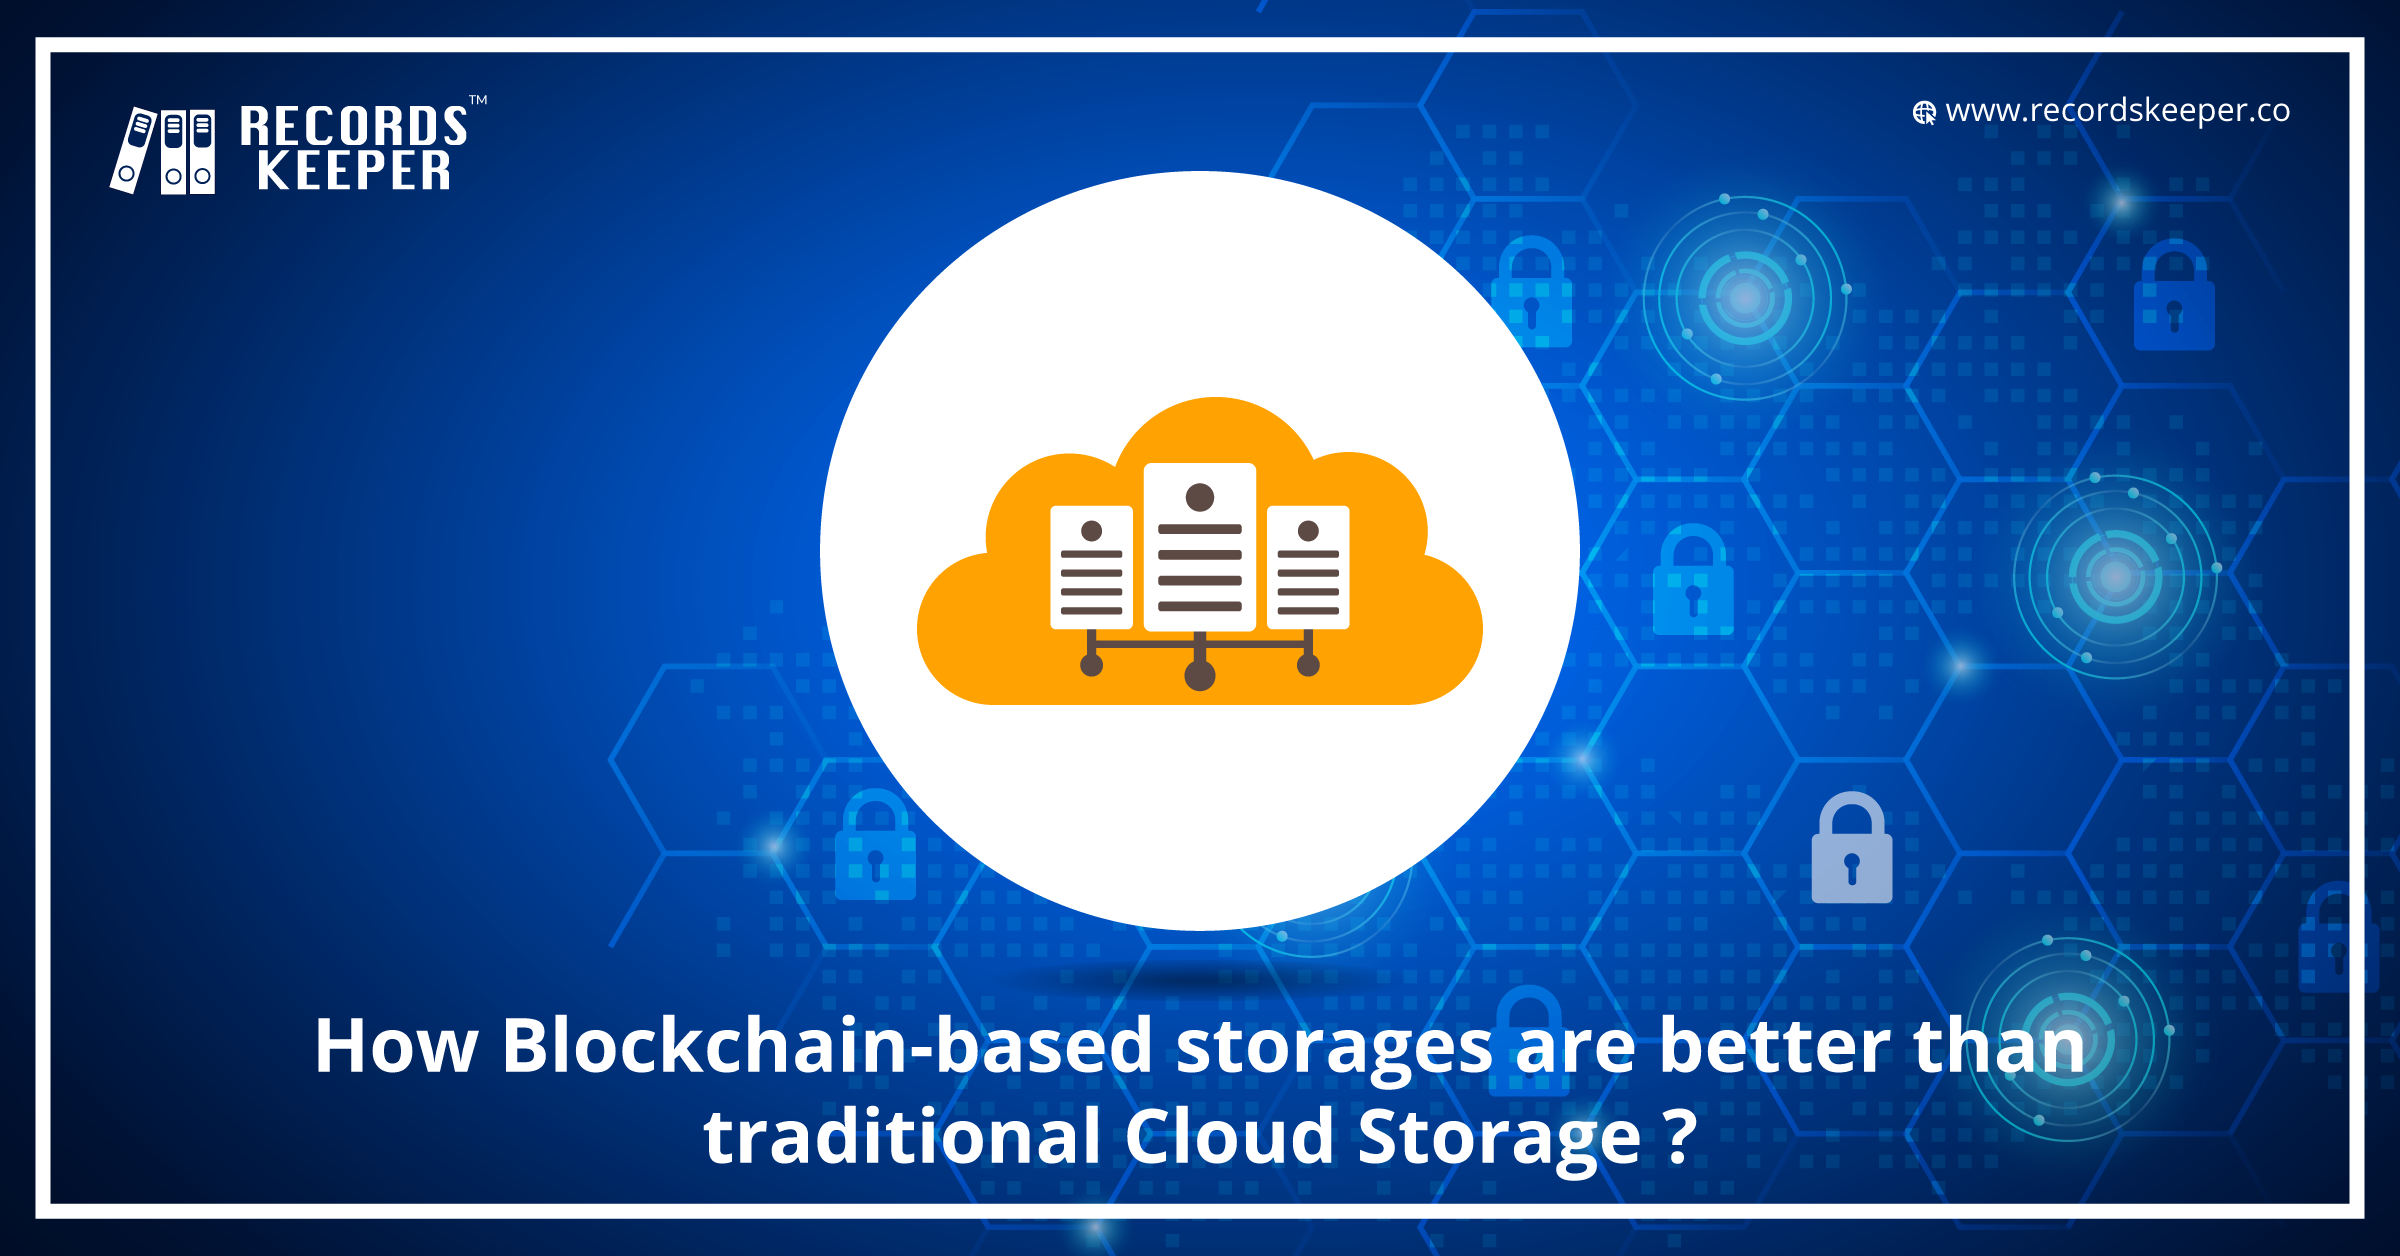 How Blockchain Based Storages are Better than the Traditional Cloud Storage?